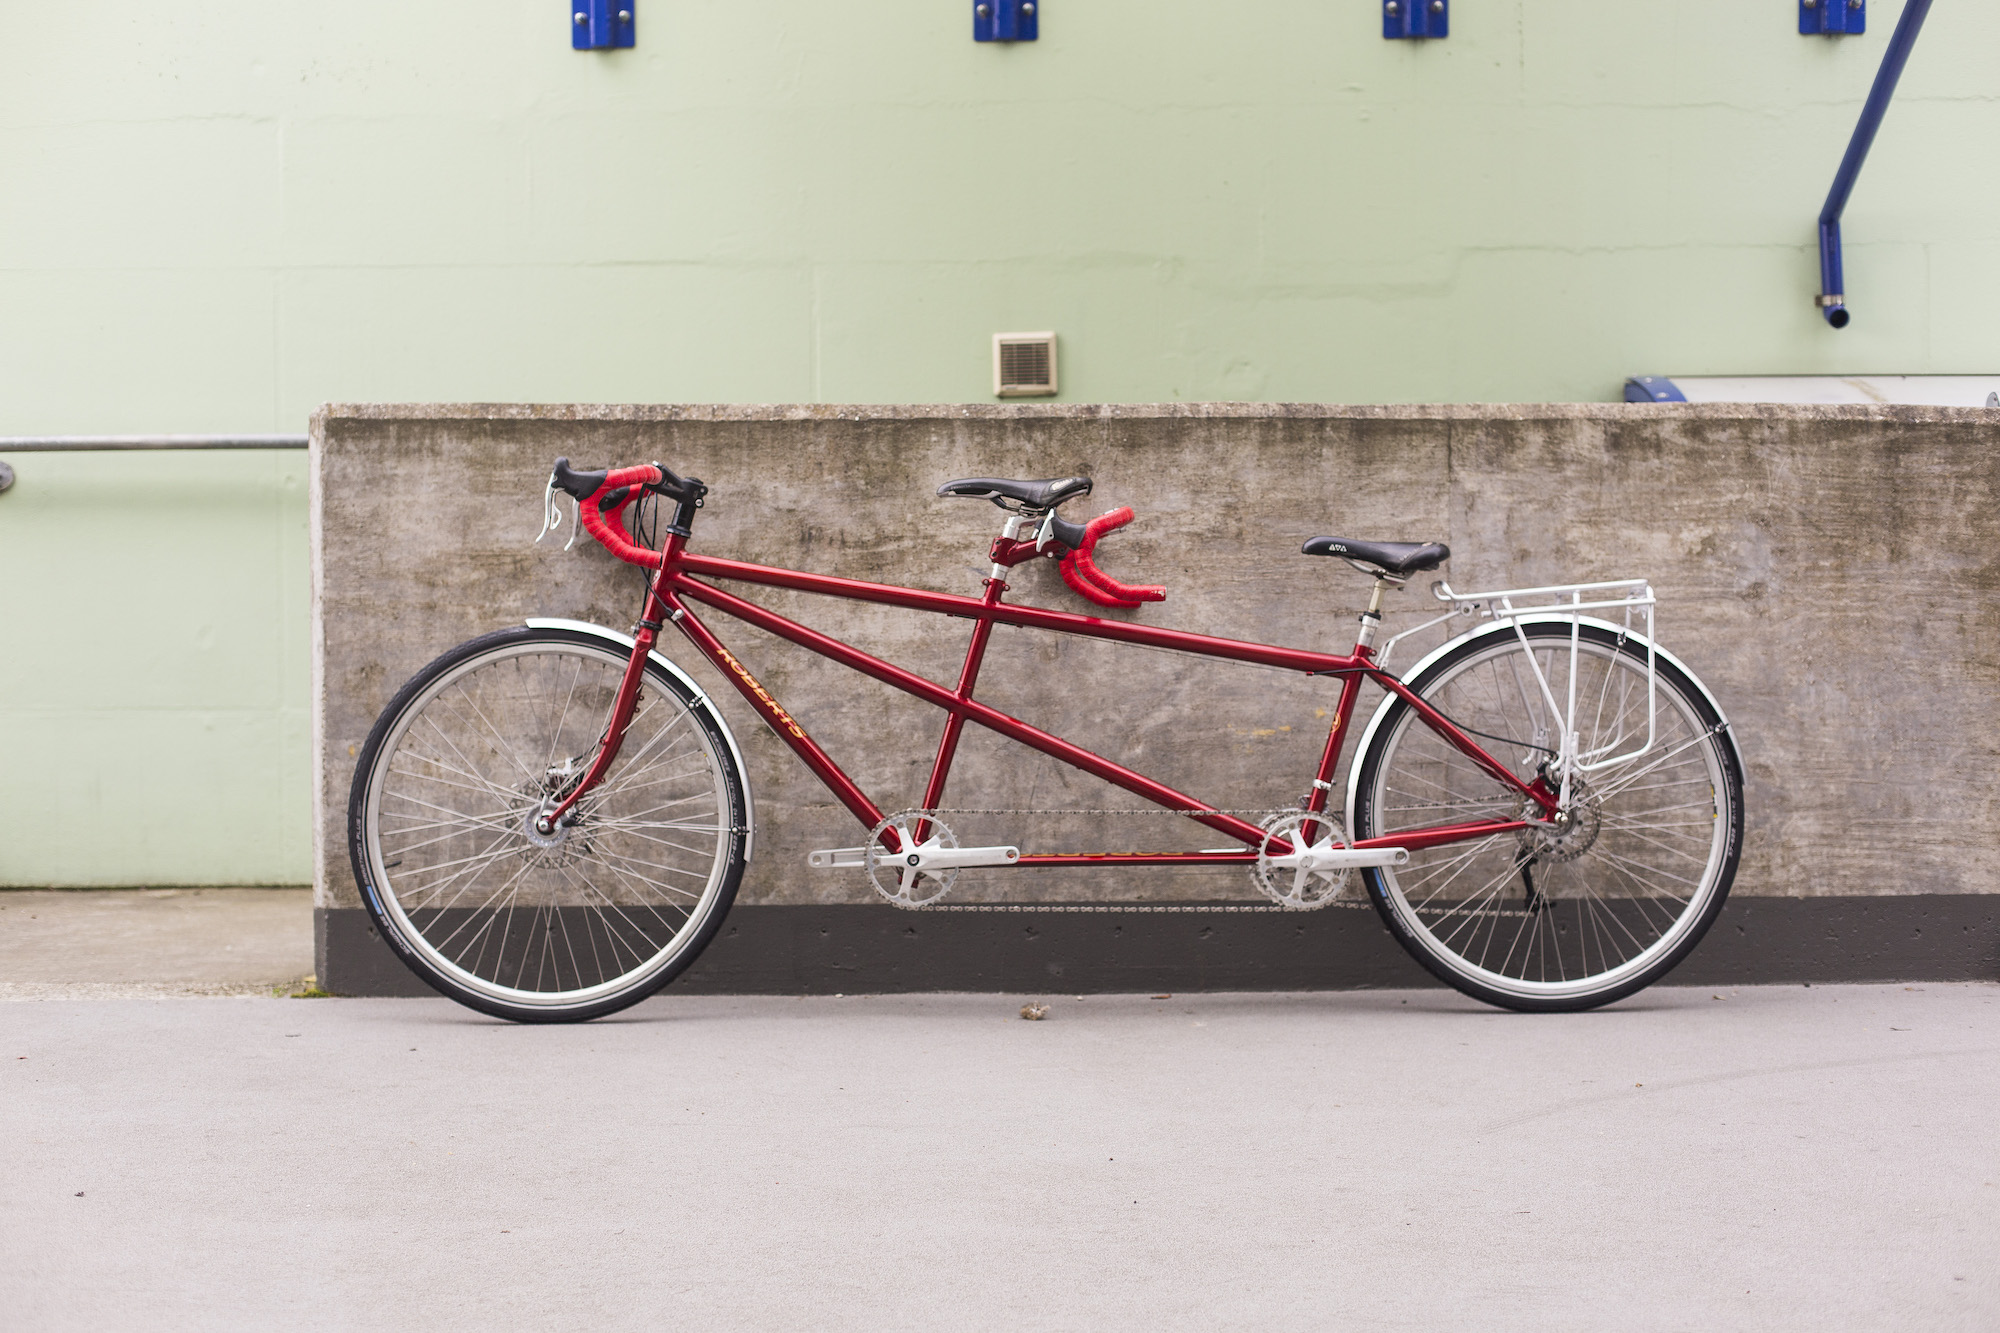 seabass-cycles-bikes-parts-instore-2-april-2019-roberts-tandem-candy-red-4349.jpg